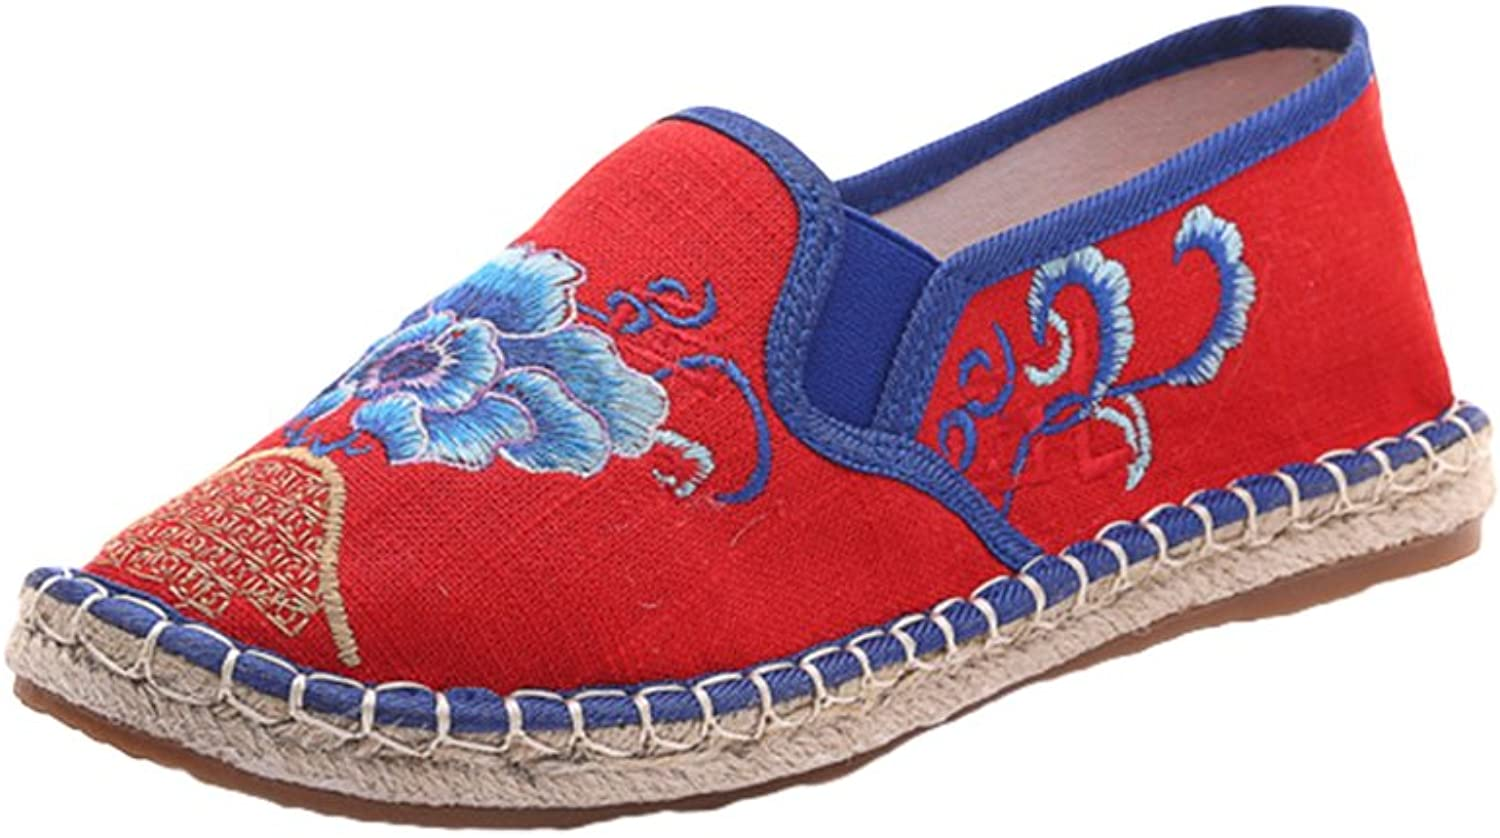 AvaCostume Womens Embroidery Linen Sewing Flats Casual Slip on Loafer